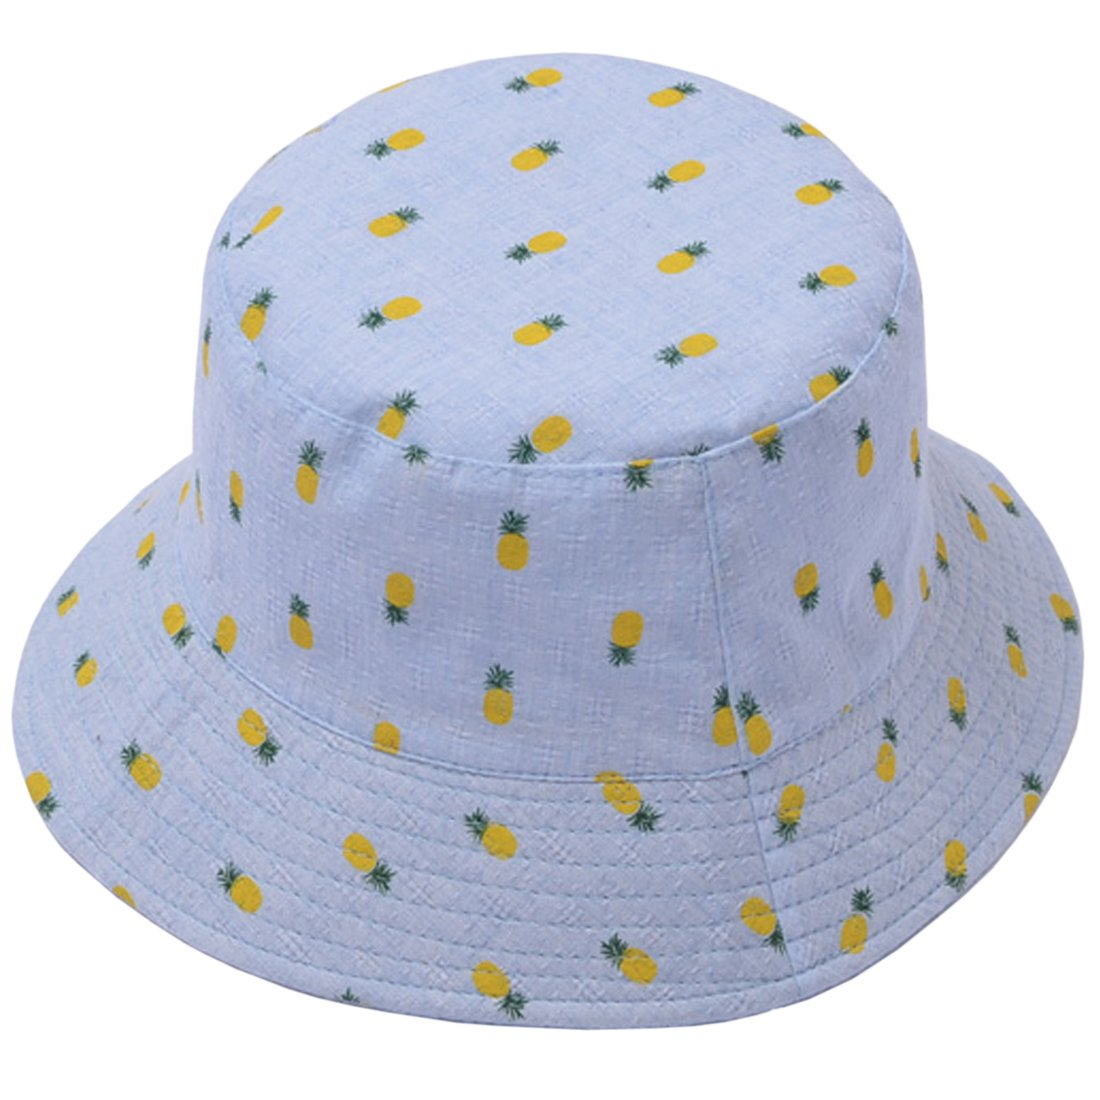 ACVIP Women's Pineapple Print Packable Fisherman Bucket Hat Summer Outdoor Cap 8AC02Y25O-4